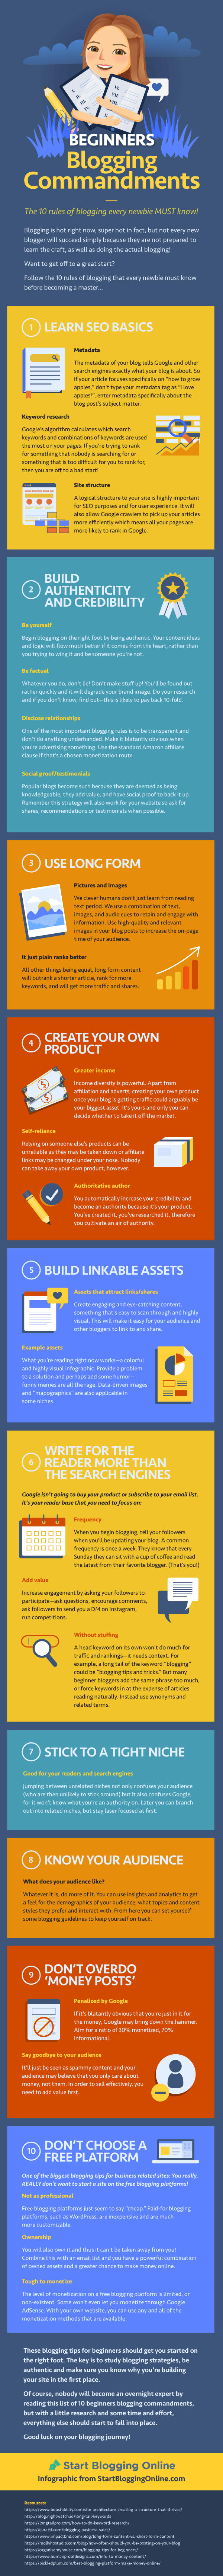 Beginners Blogging Commandments Infographic: 10 blogging tips for beginners